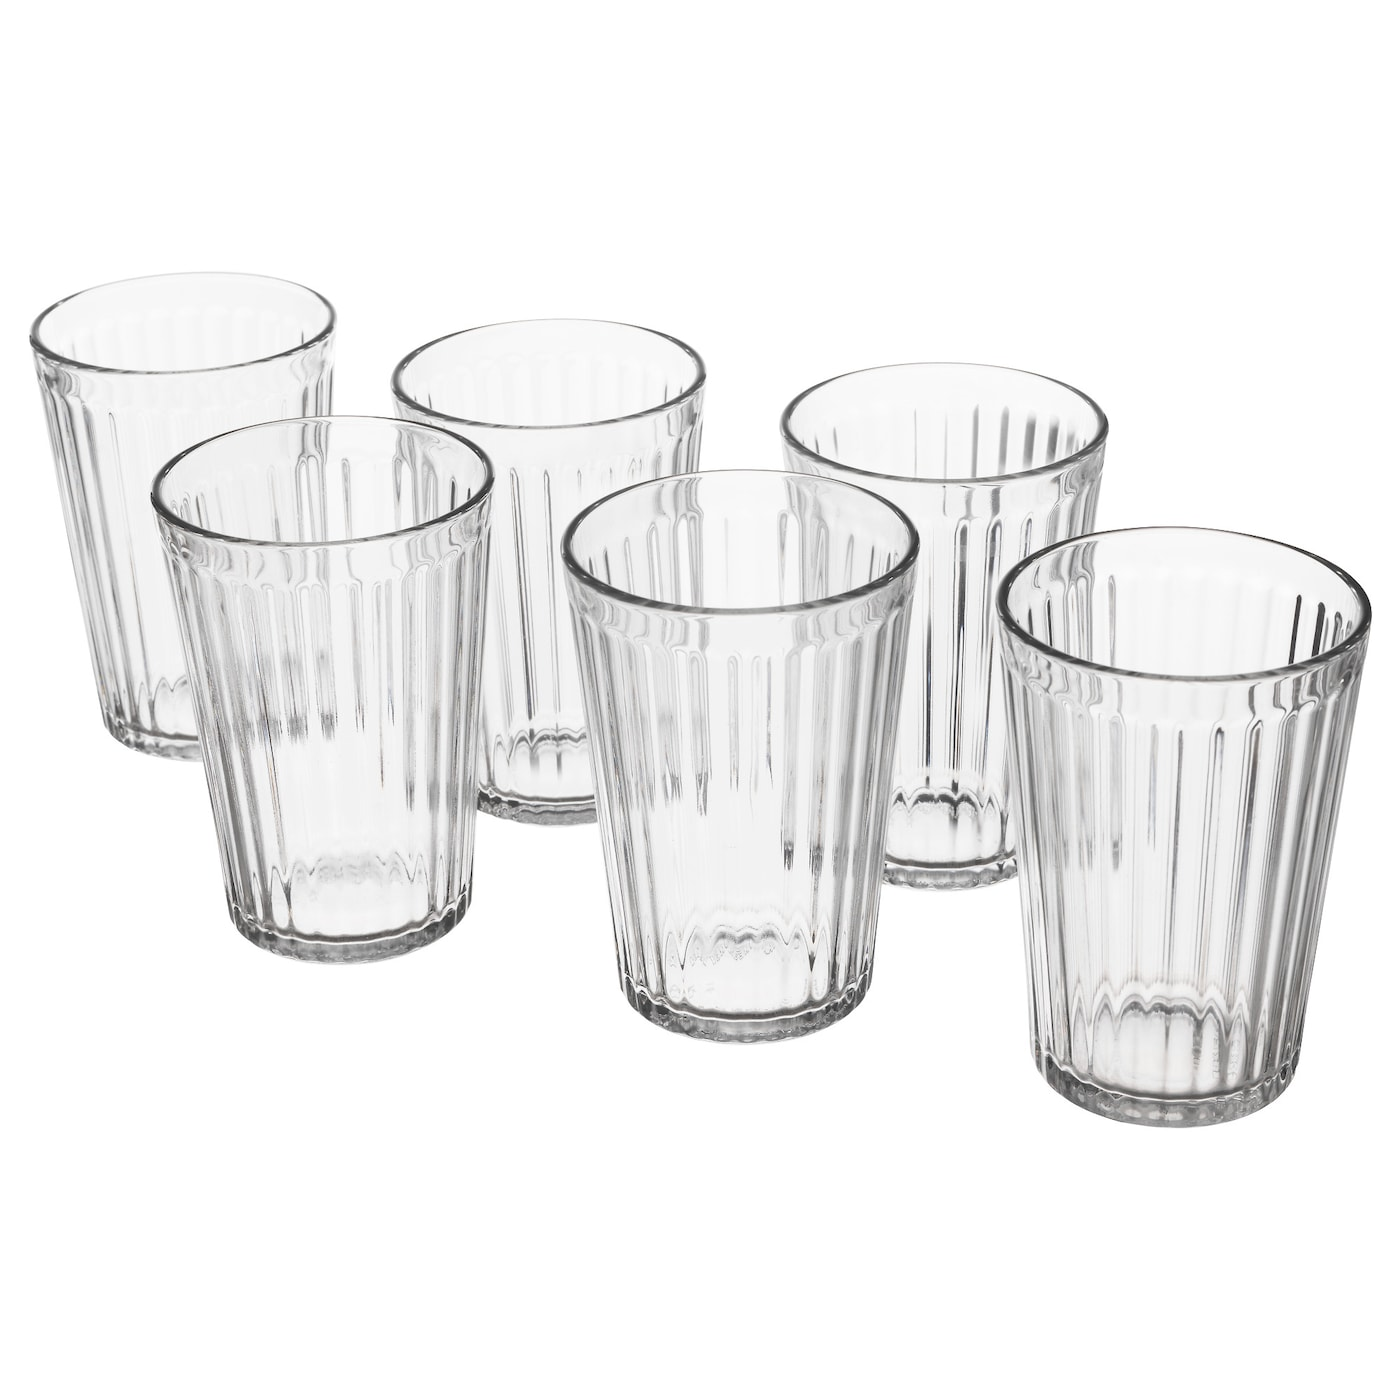 IKEA VARDAGEN glass Also suitable for hot drinks.